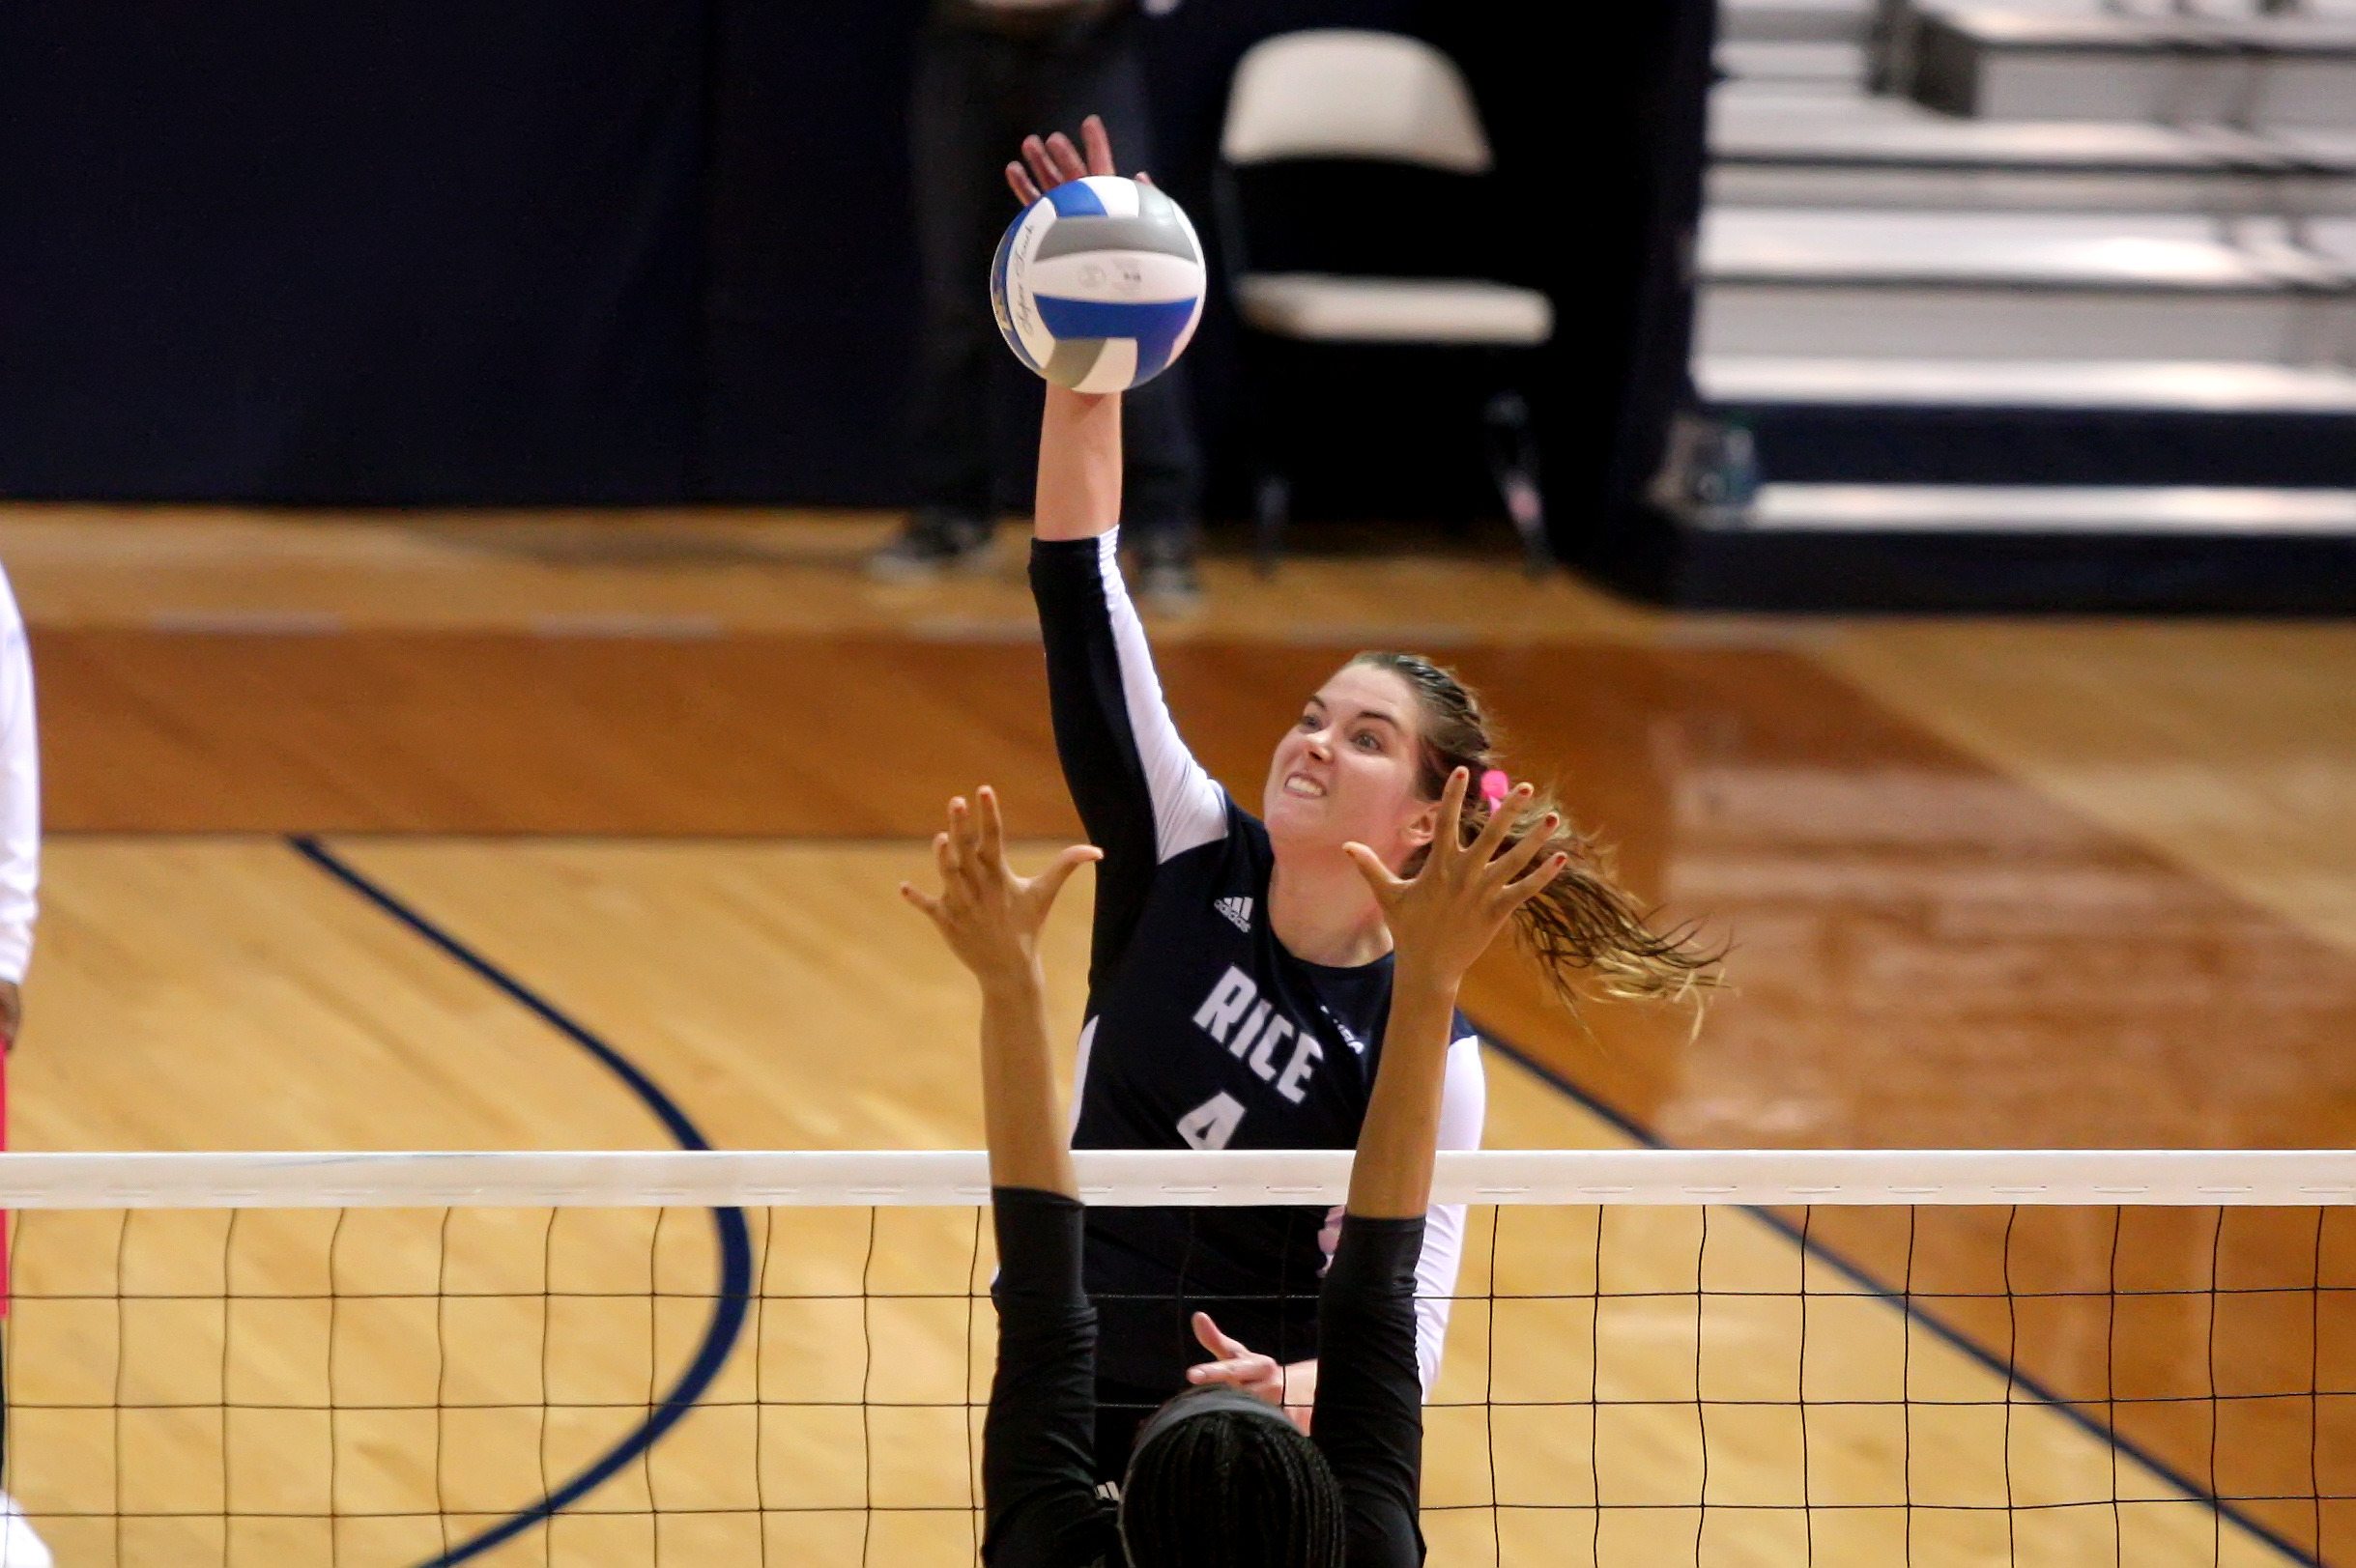 Leah Mikesky earned her 12th double-double of the season in Rice's 3-2 win over North Texas.